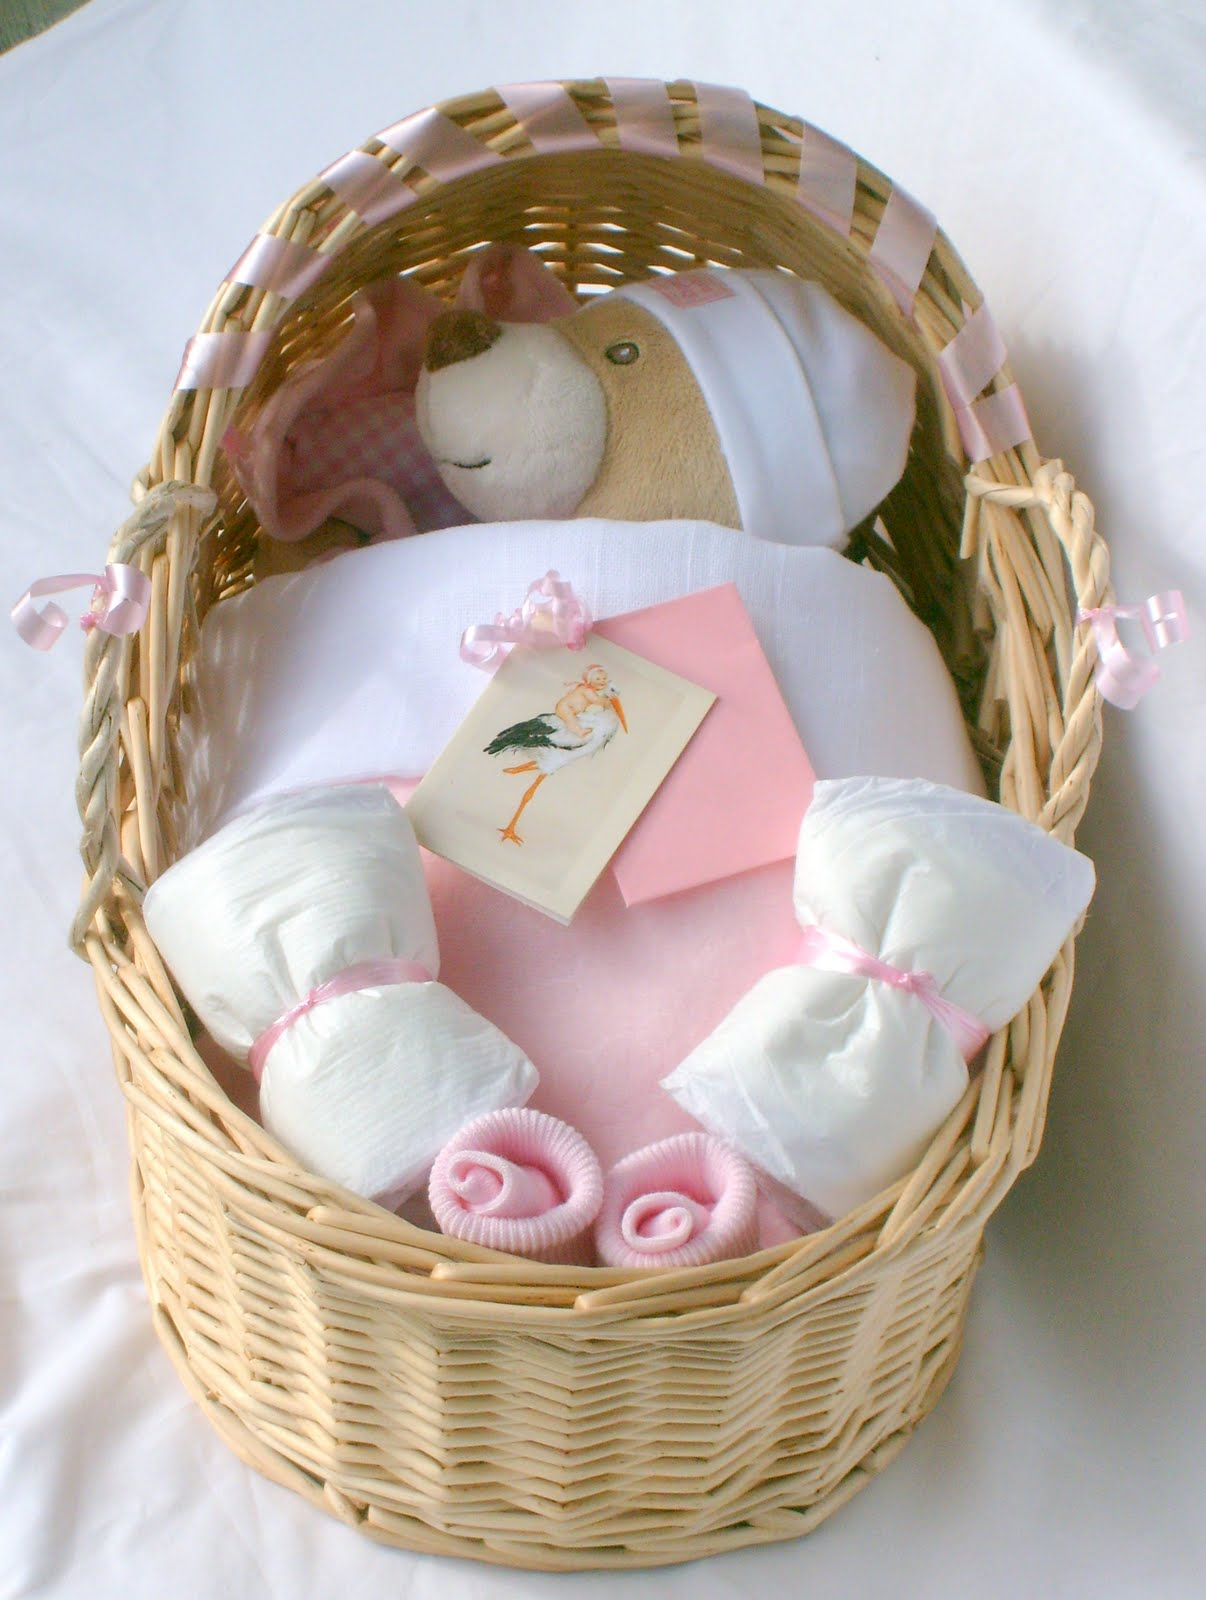 Baby Gift Baskets Boots : New baby gift baskets